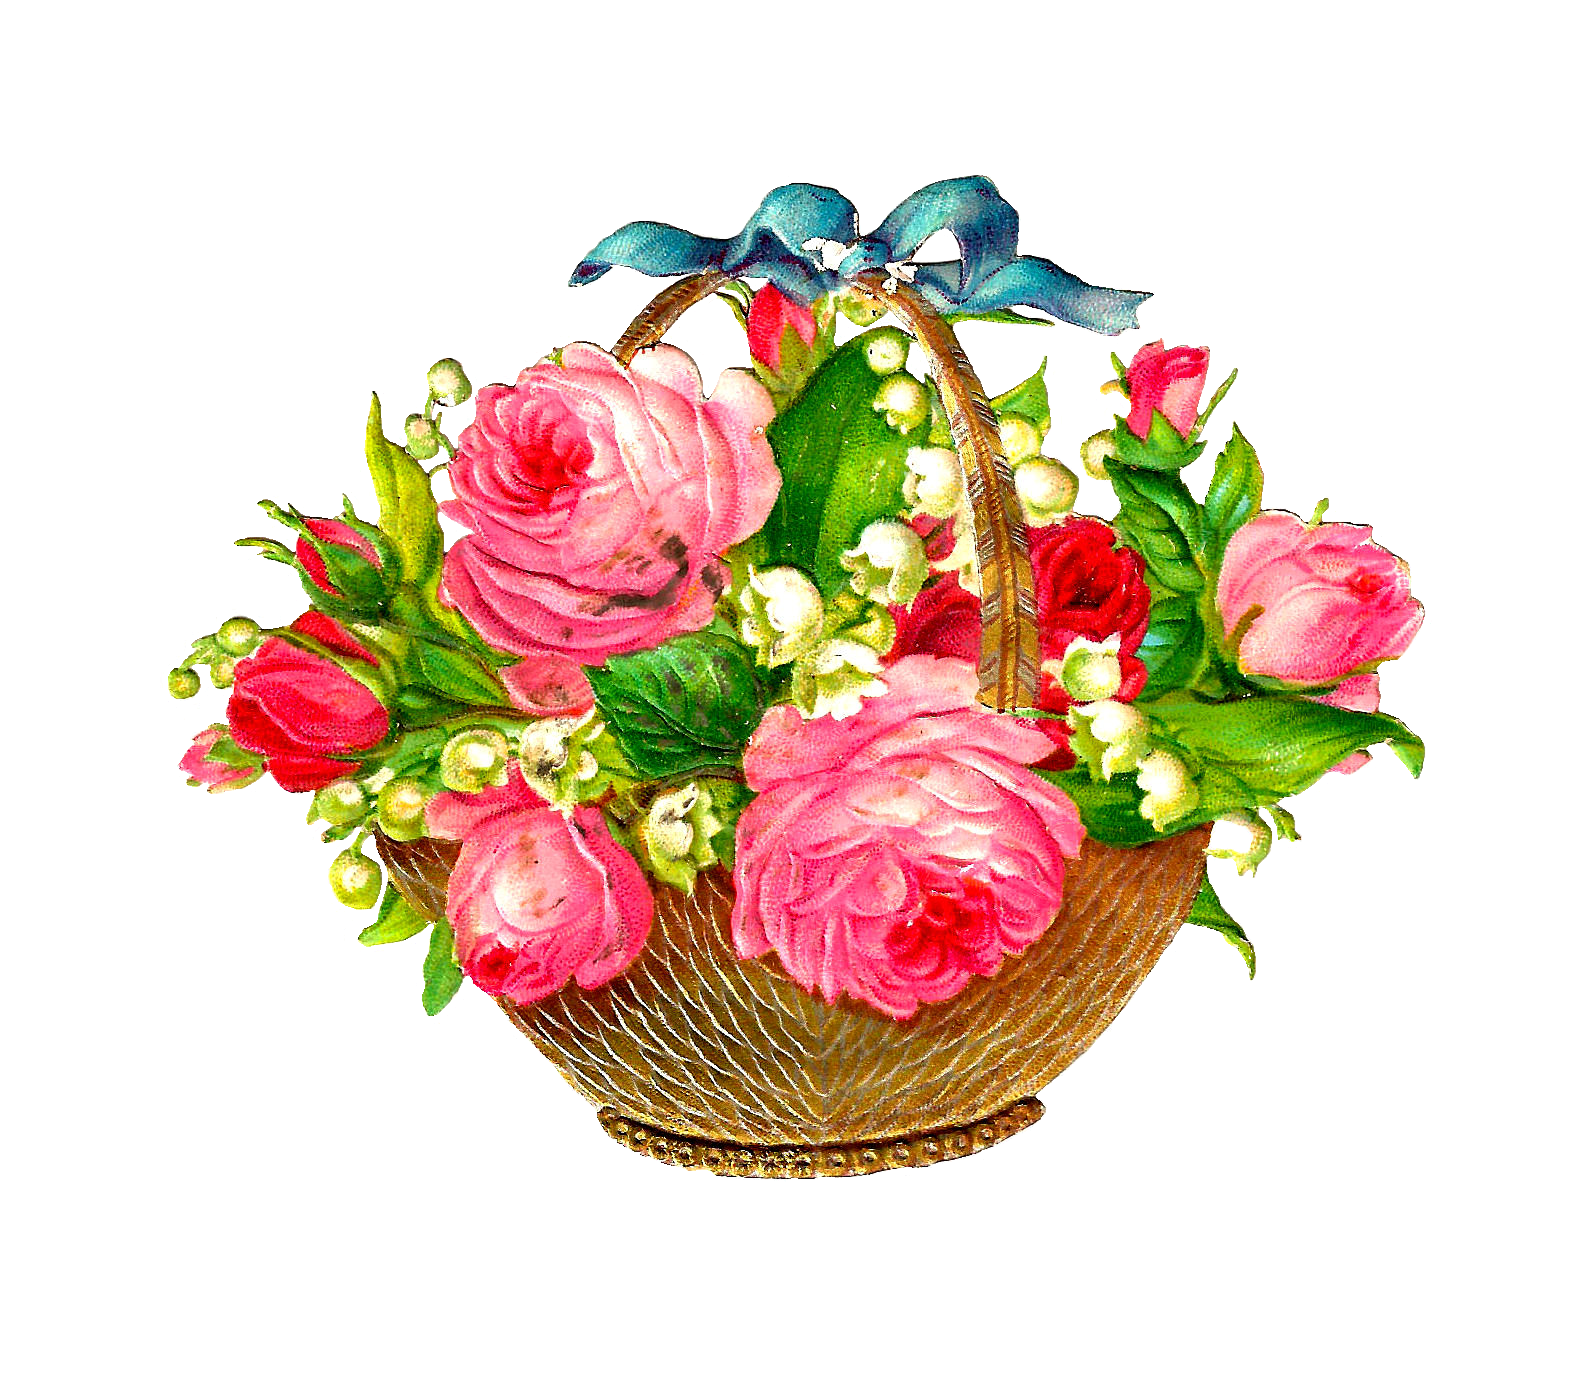 Free Flower Basket Graphic  Pink Roses And Lily Of The Valley Flowers